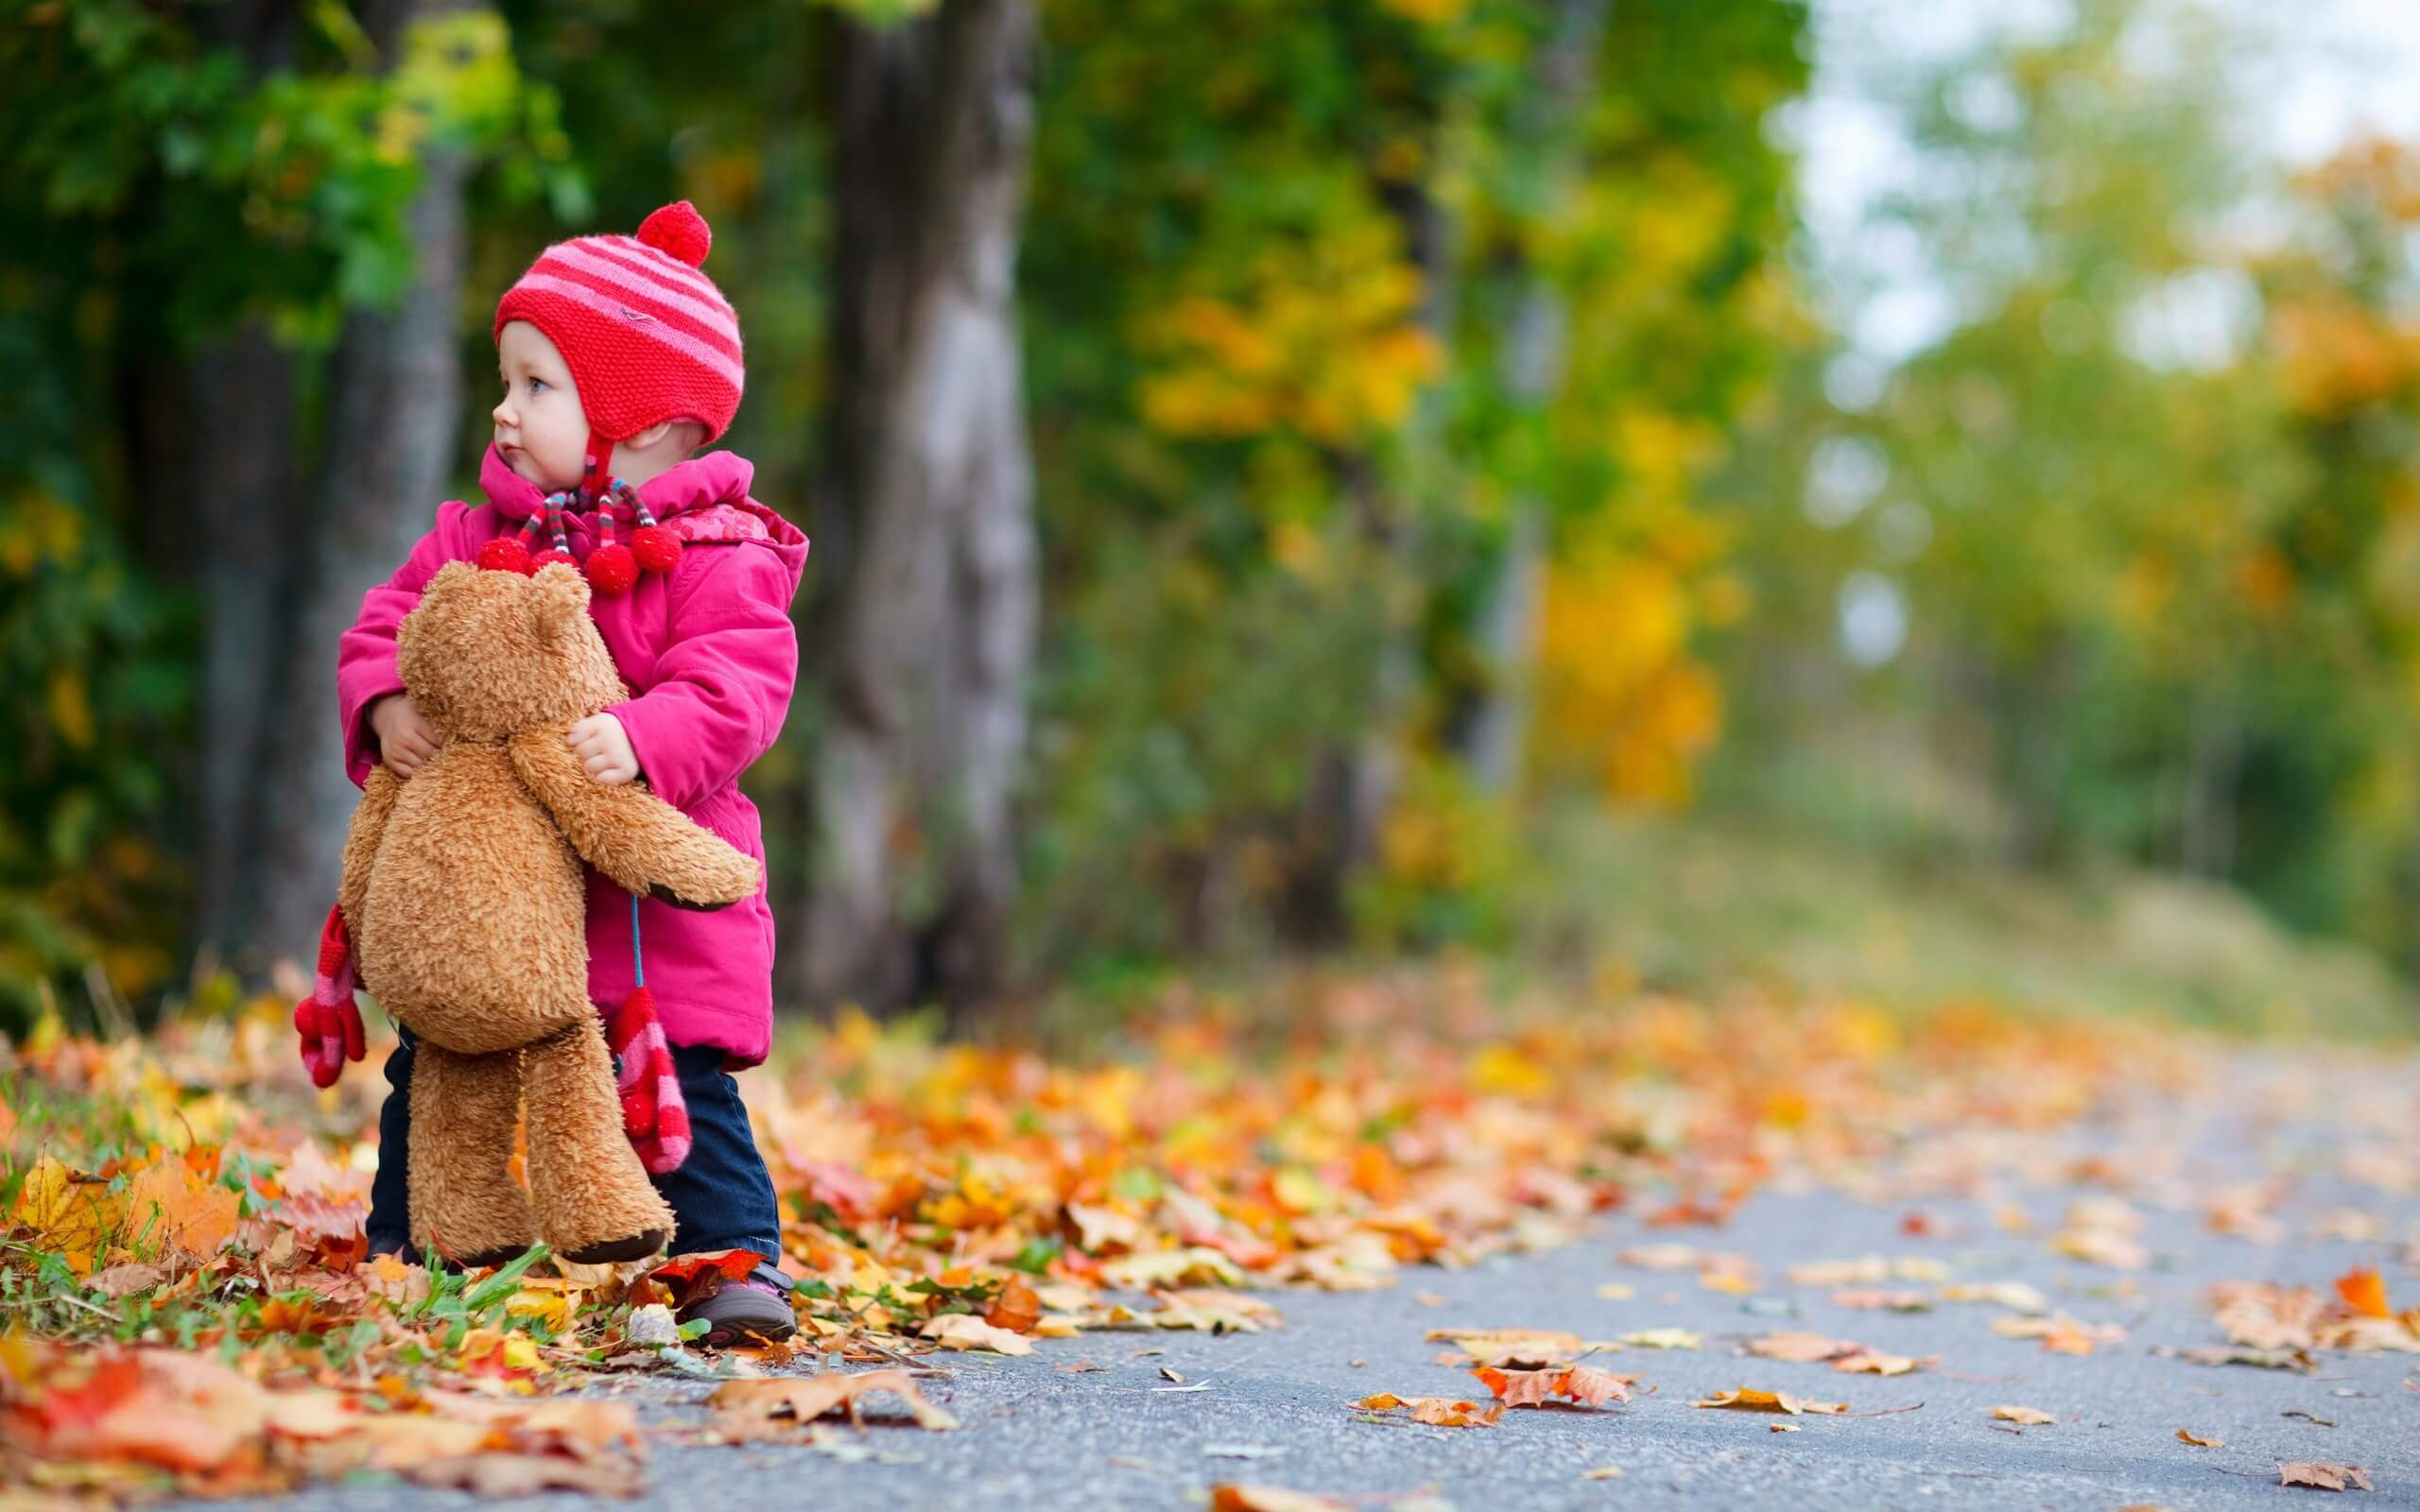 6978327-child-girl-bear-toy-autumn-leaves-nature-photo